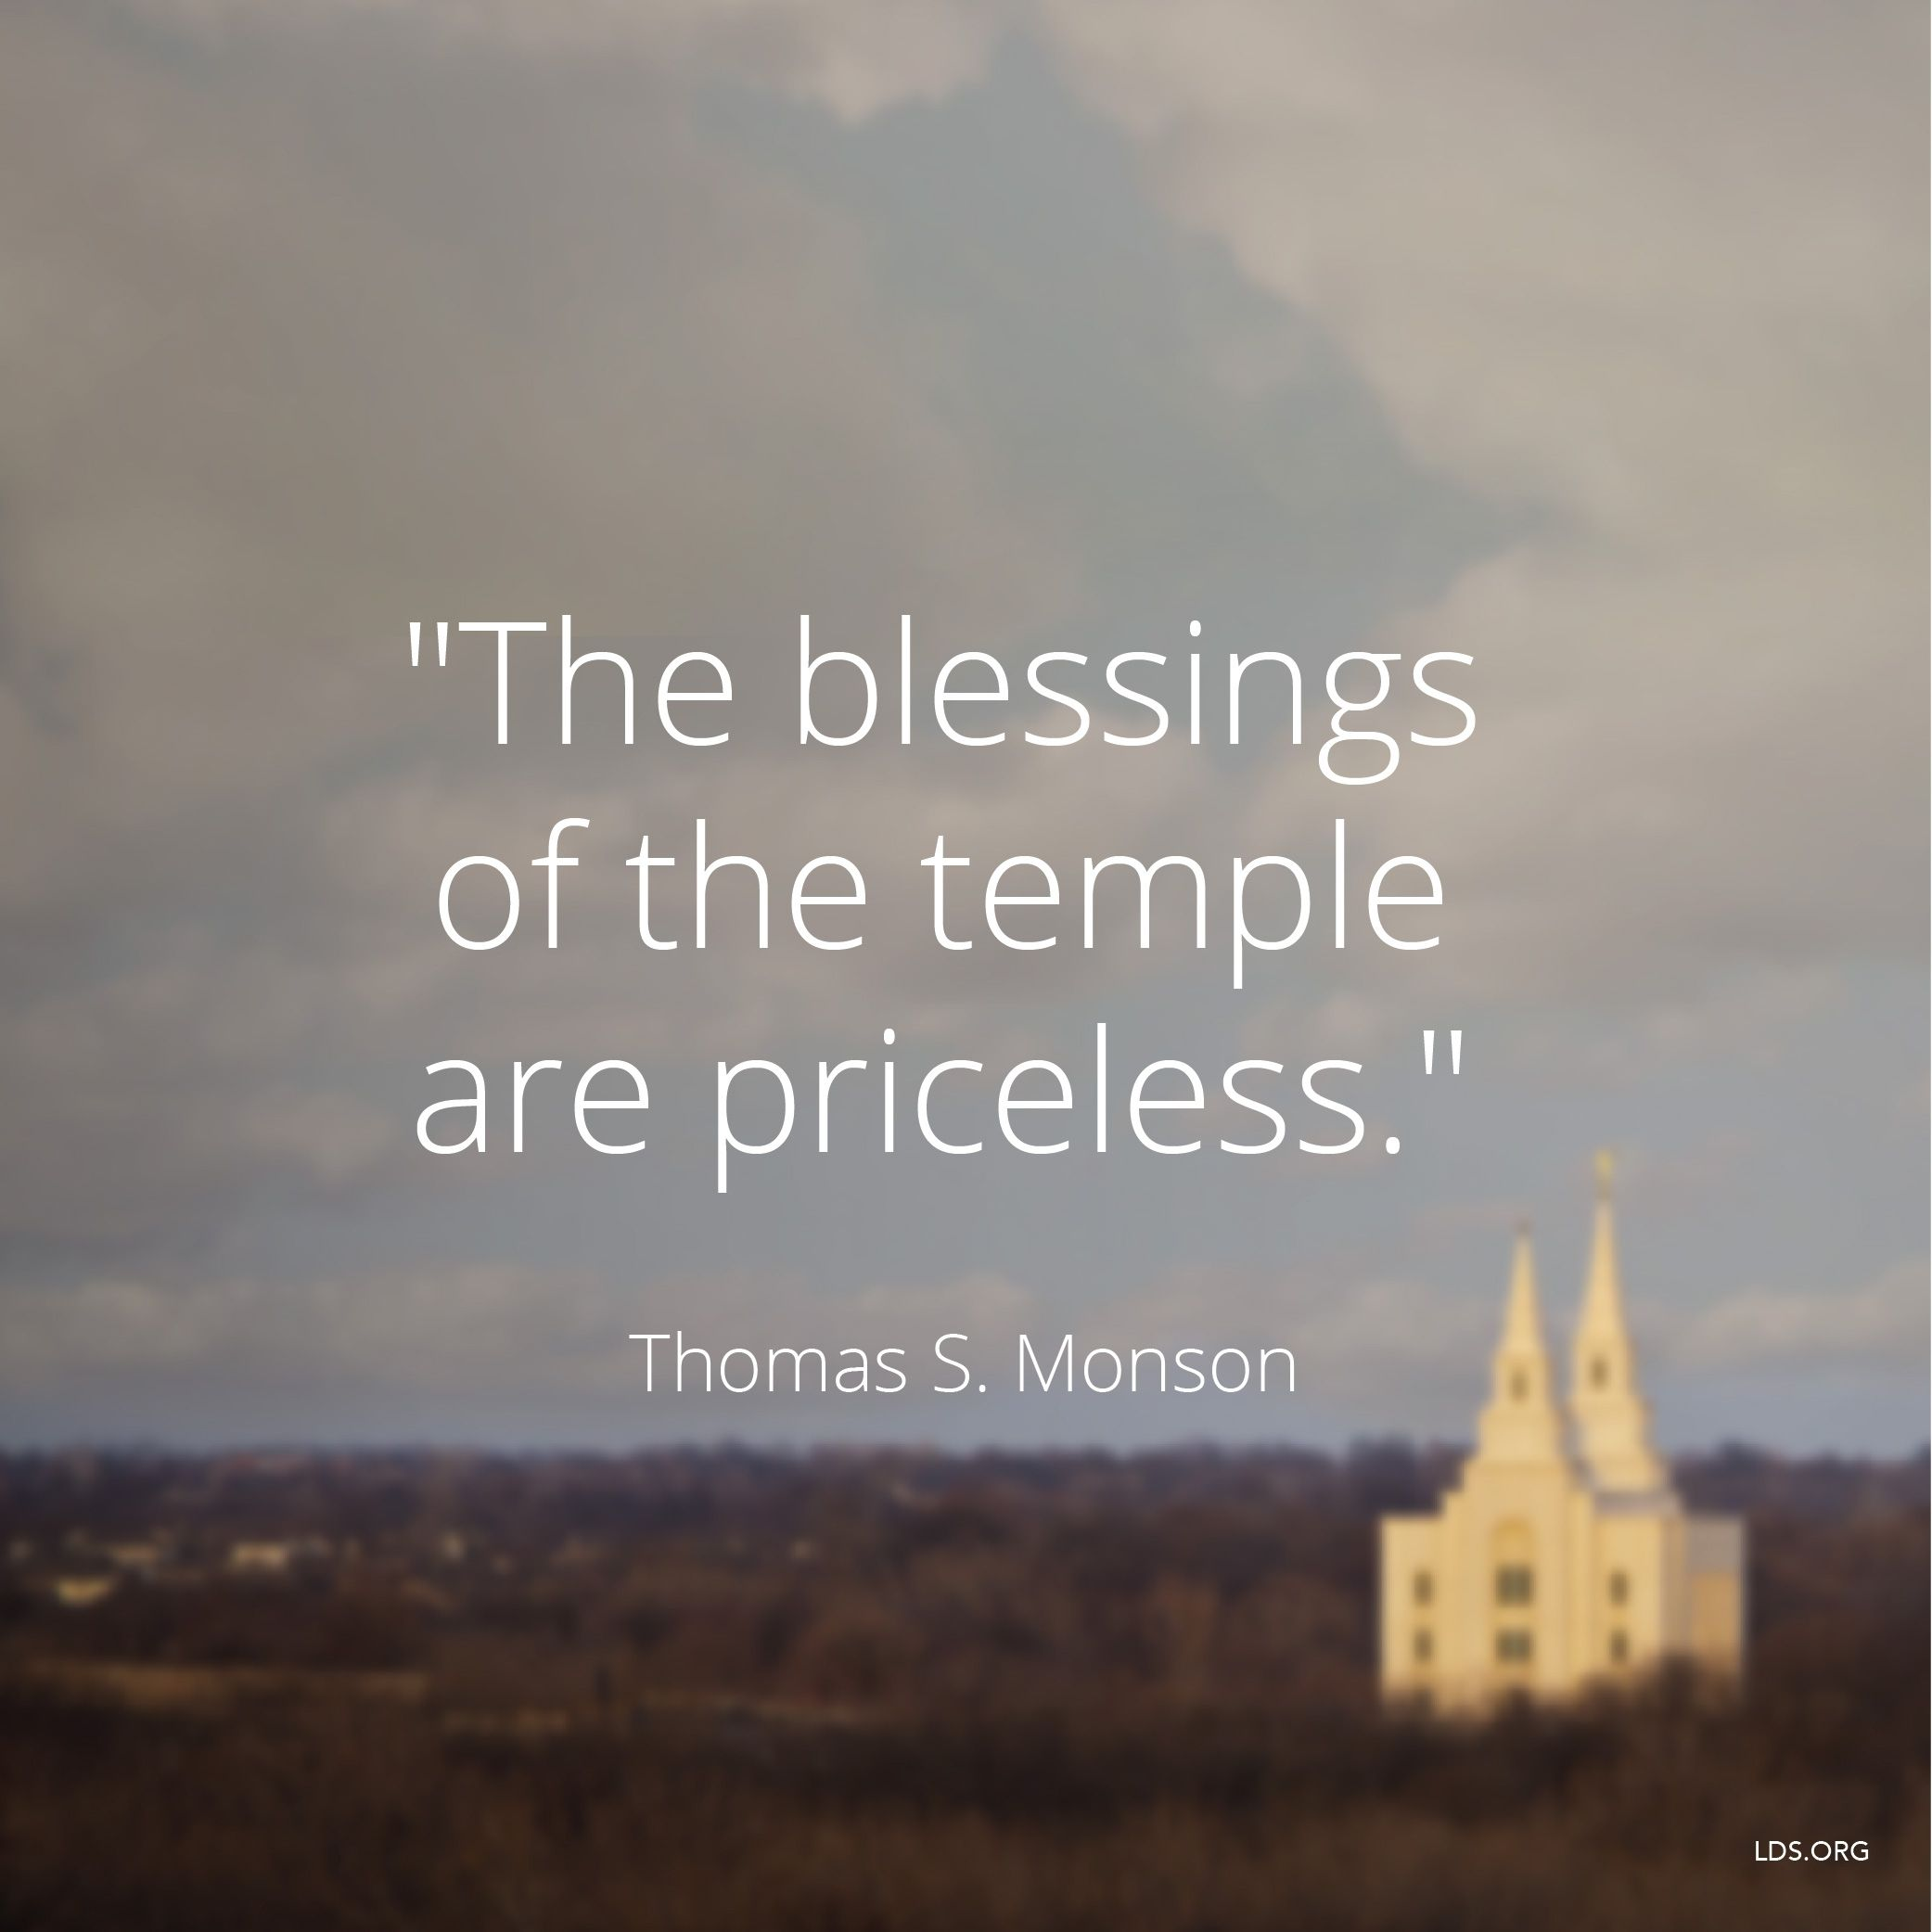 """""""The blessings of the temple are priceless.""""—President Thomas S. Monson, """"Blessings of the Temple"""""""